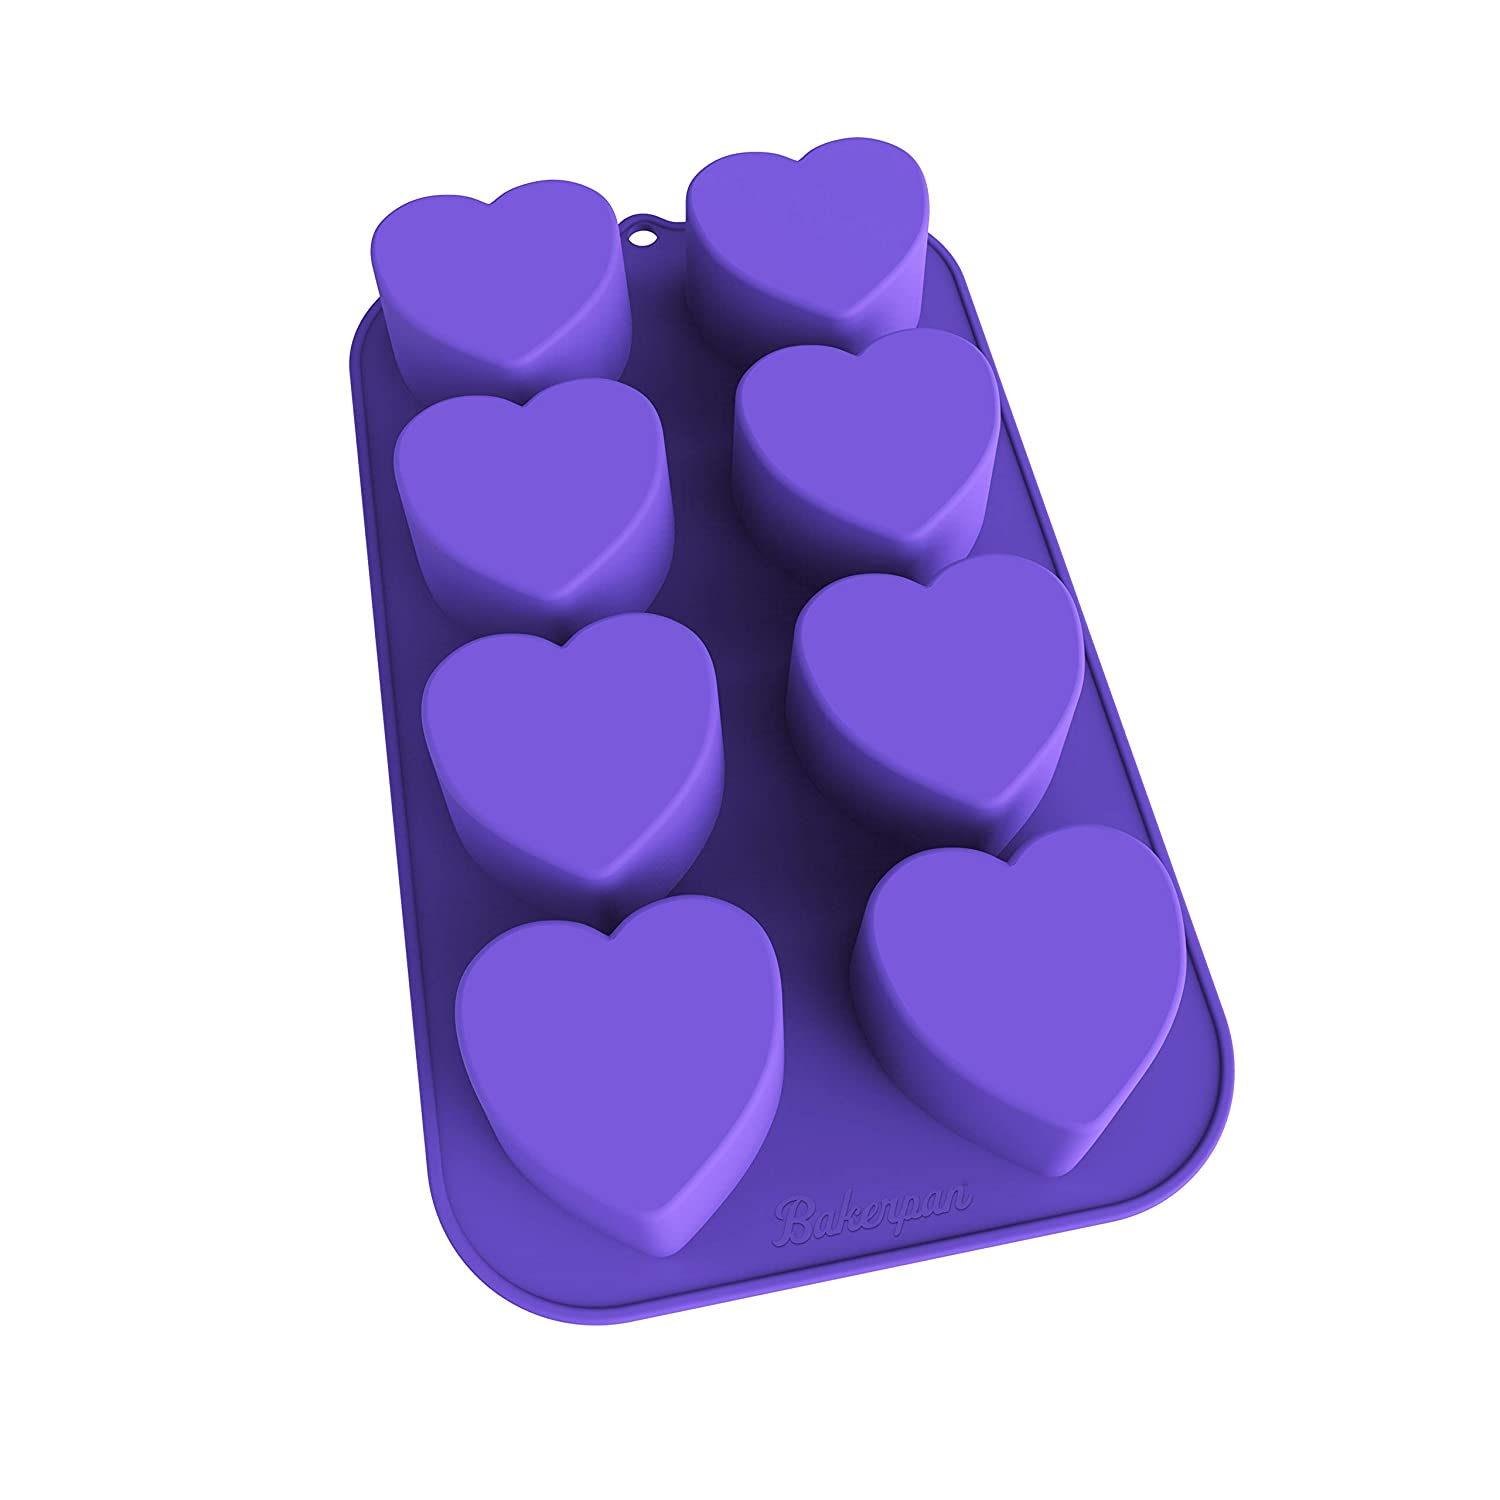 Bakerpan Silicone Mini Cake Pan, Muffin Baking Tray, Pastry Mold, 2 1/4 Inch Hearts, 8 Cavities (Purple) 02023